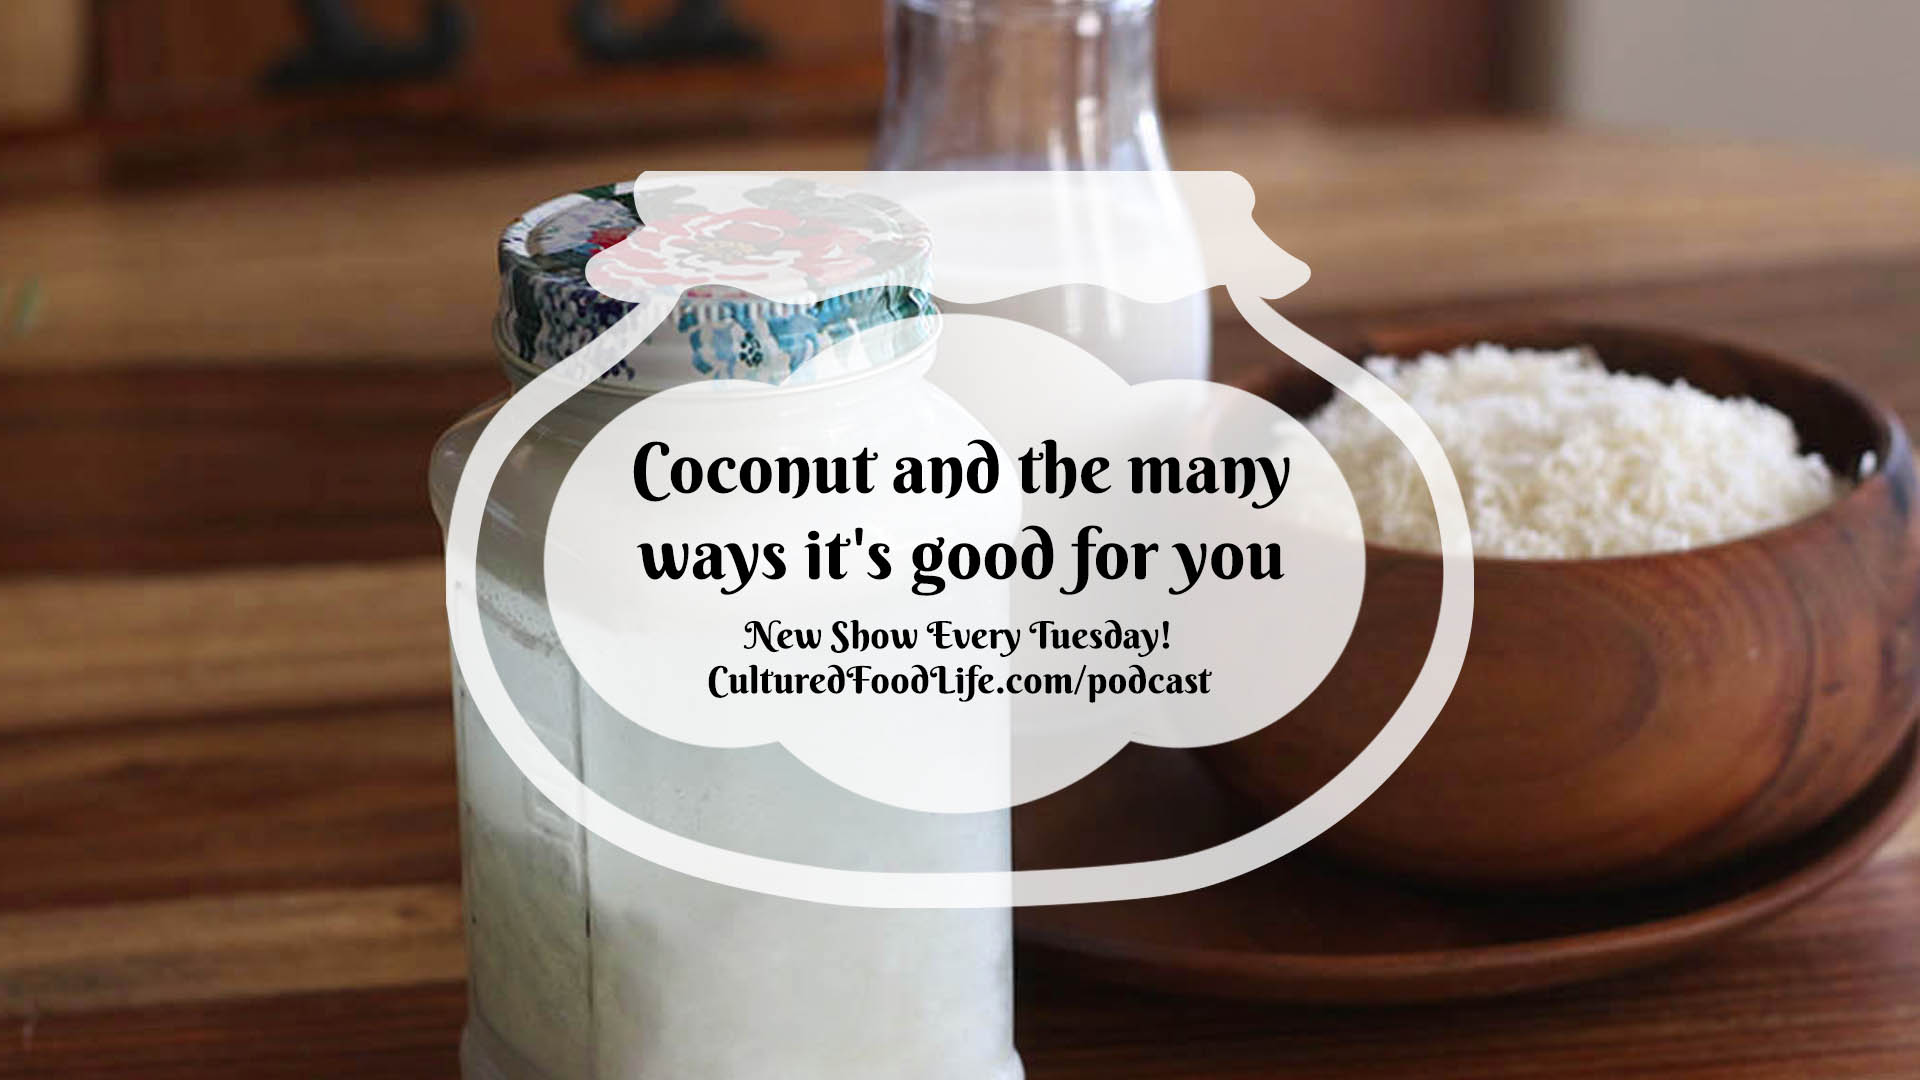 Coconut and the many ways it's good for you Full